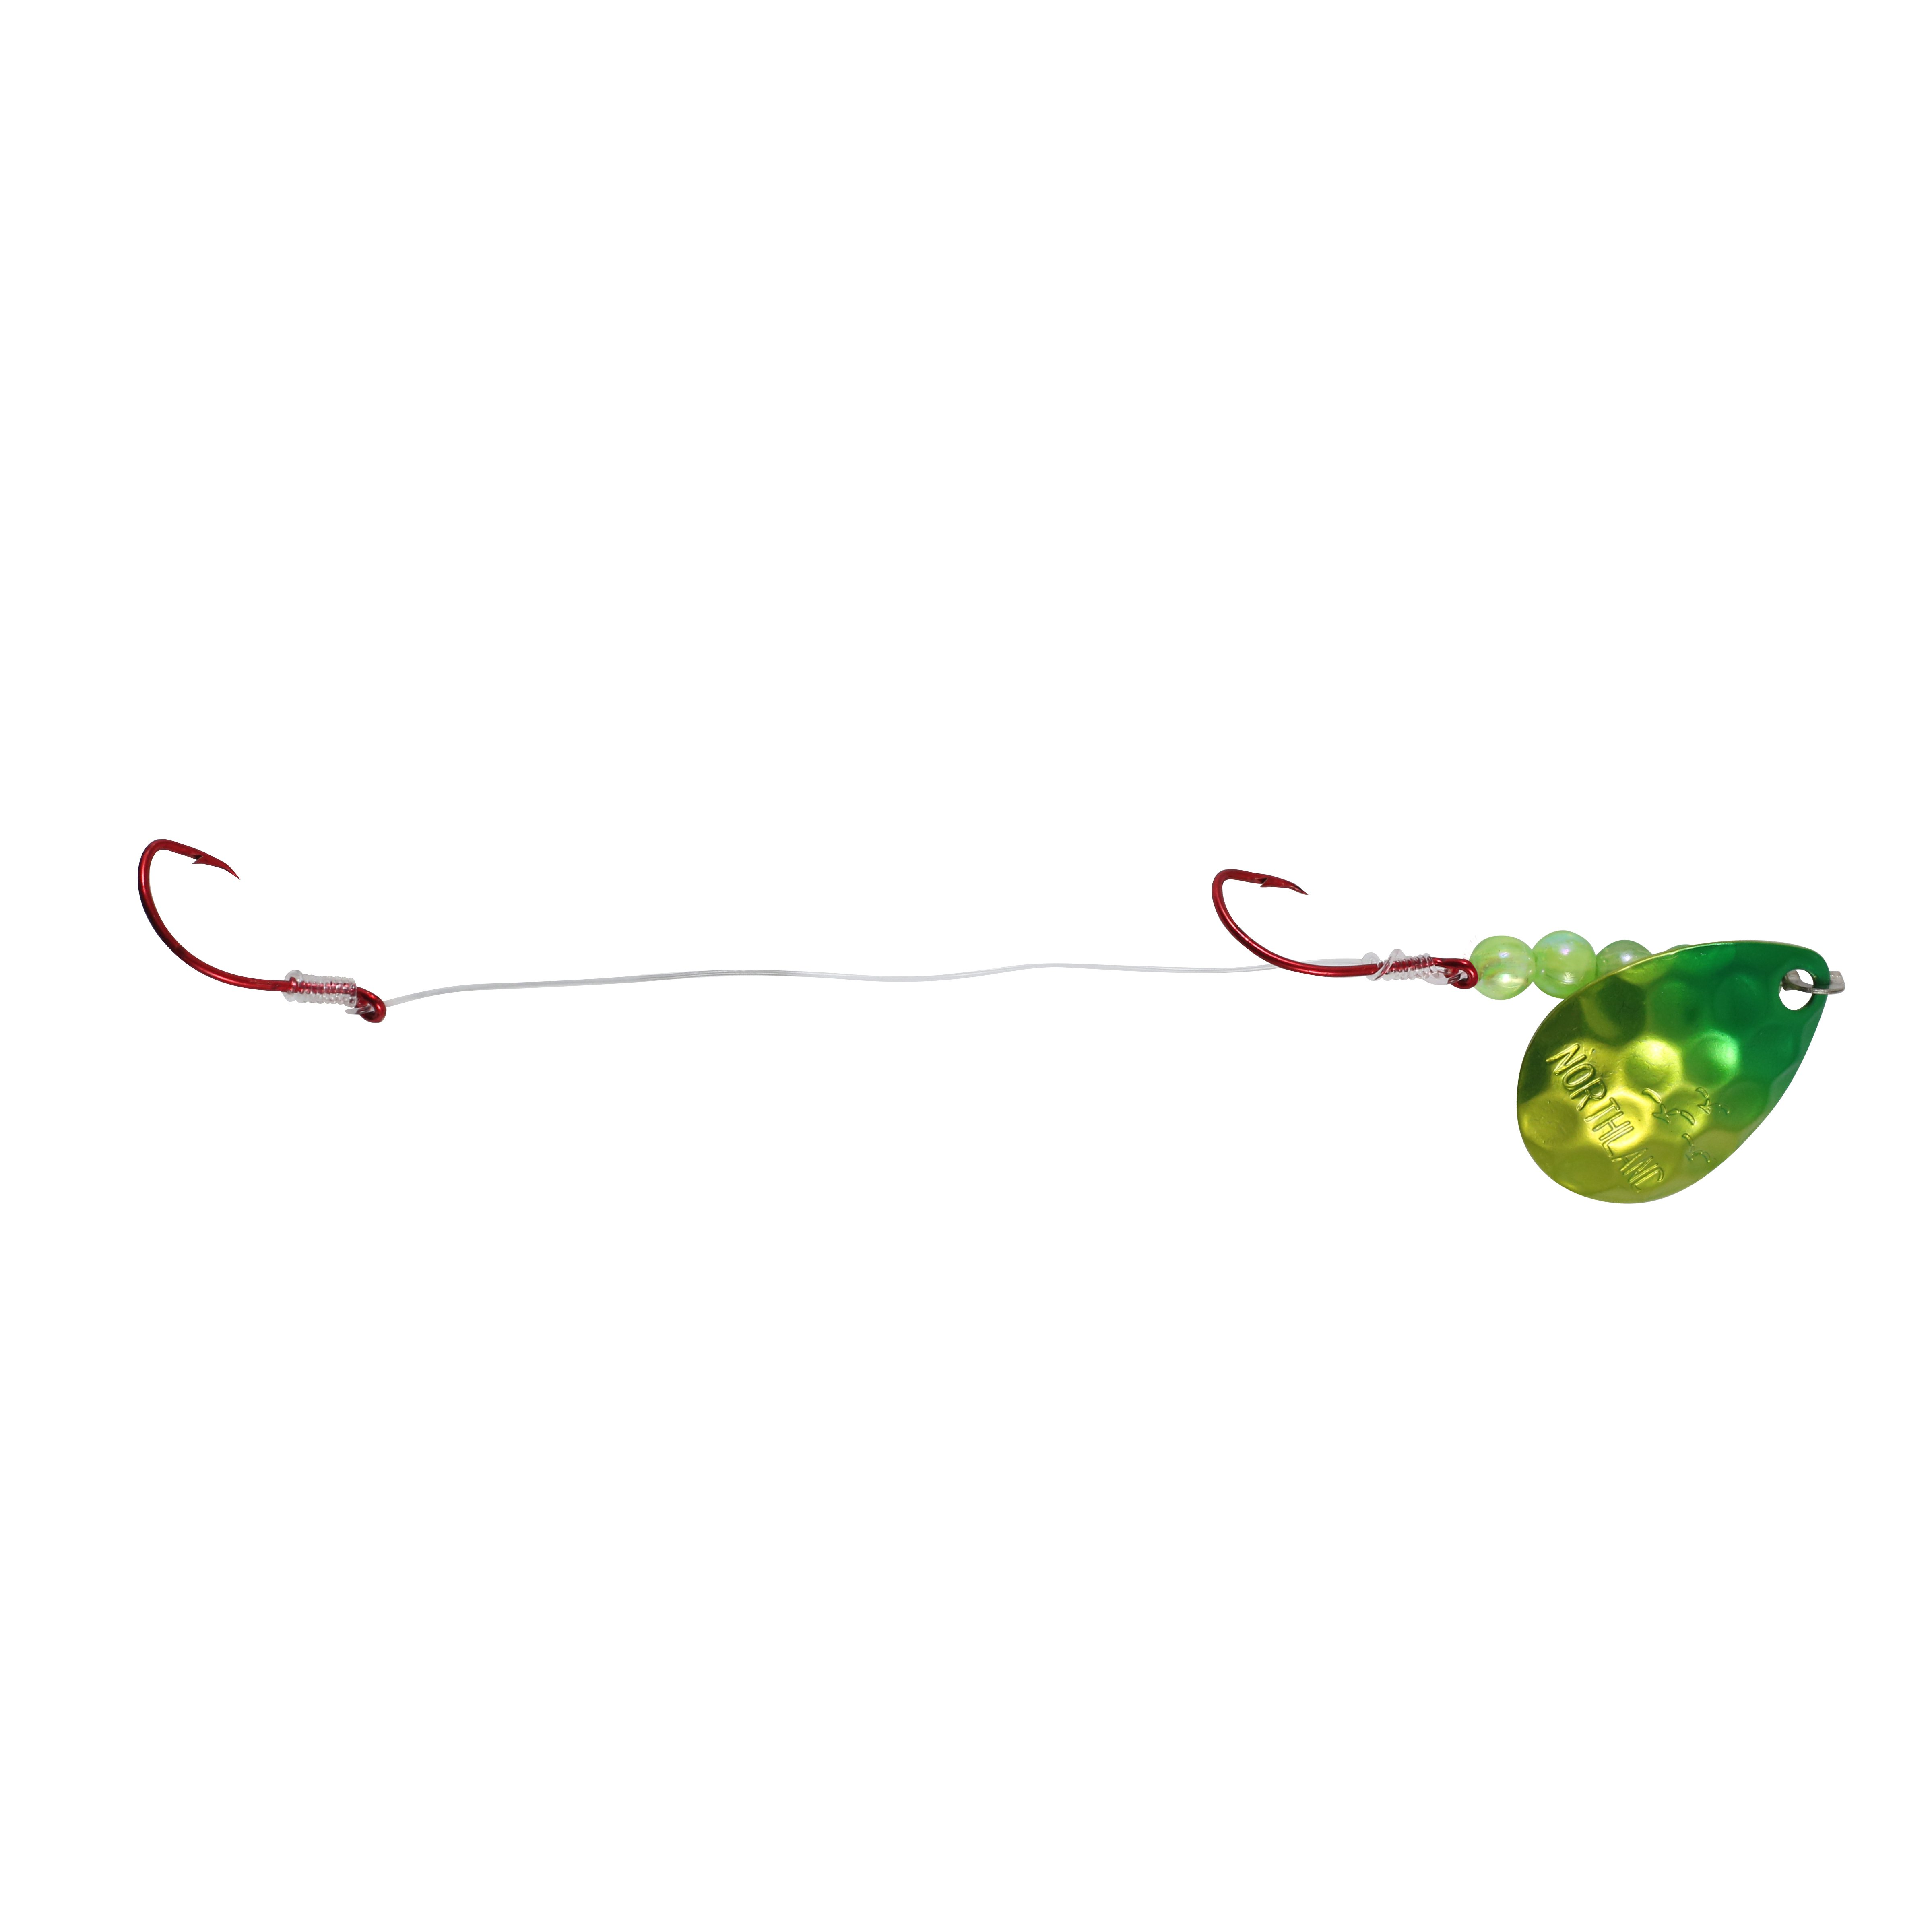 Northland Fishing Tackle Rainbow Crawler Harness Fish-Scale Series